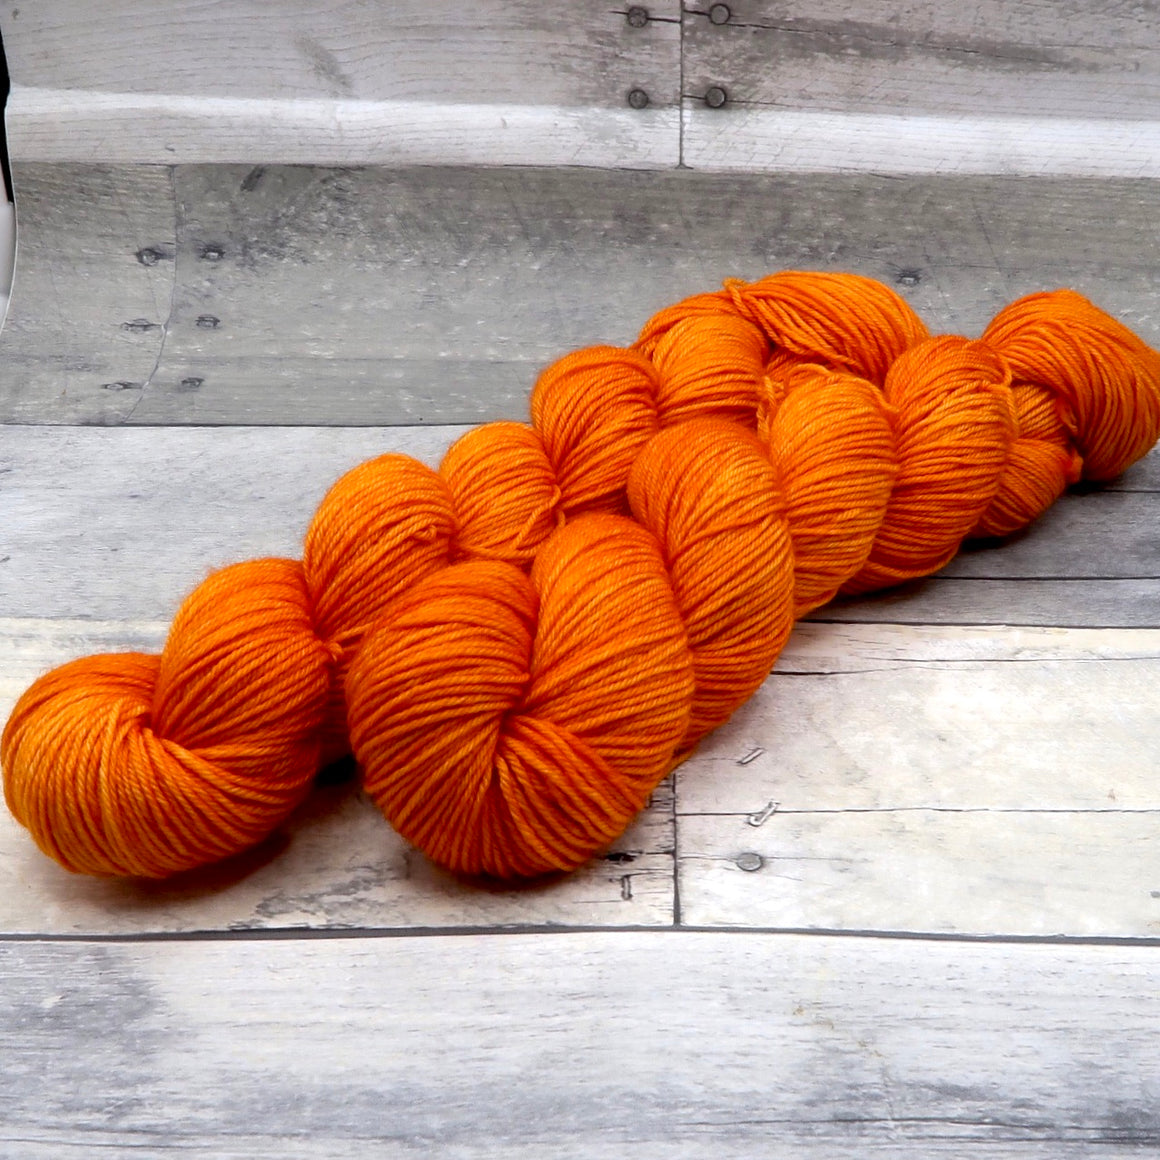 Saffron - 50g - Tonal Yarn (Everyday Sock)